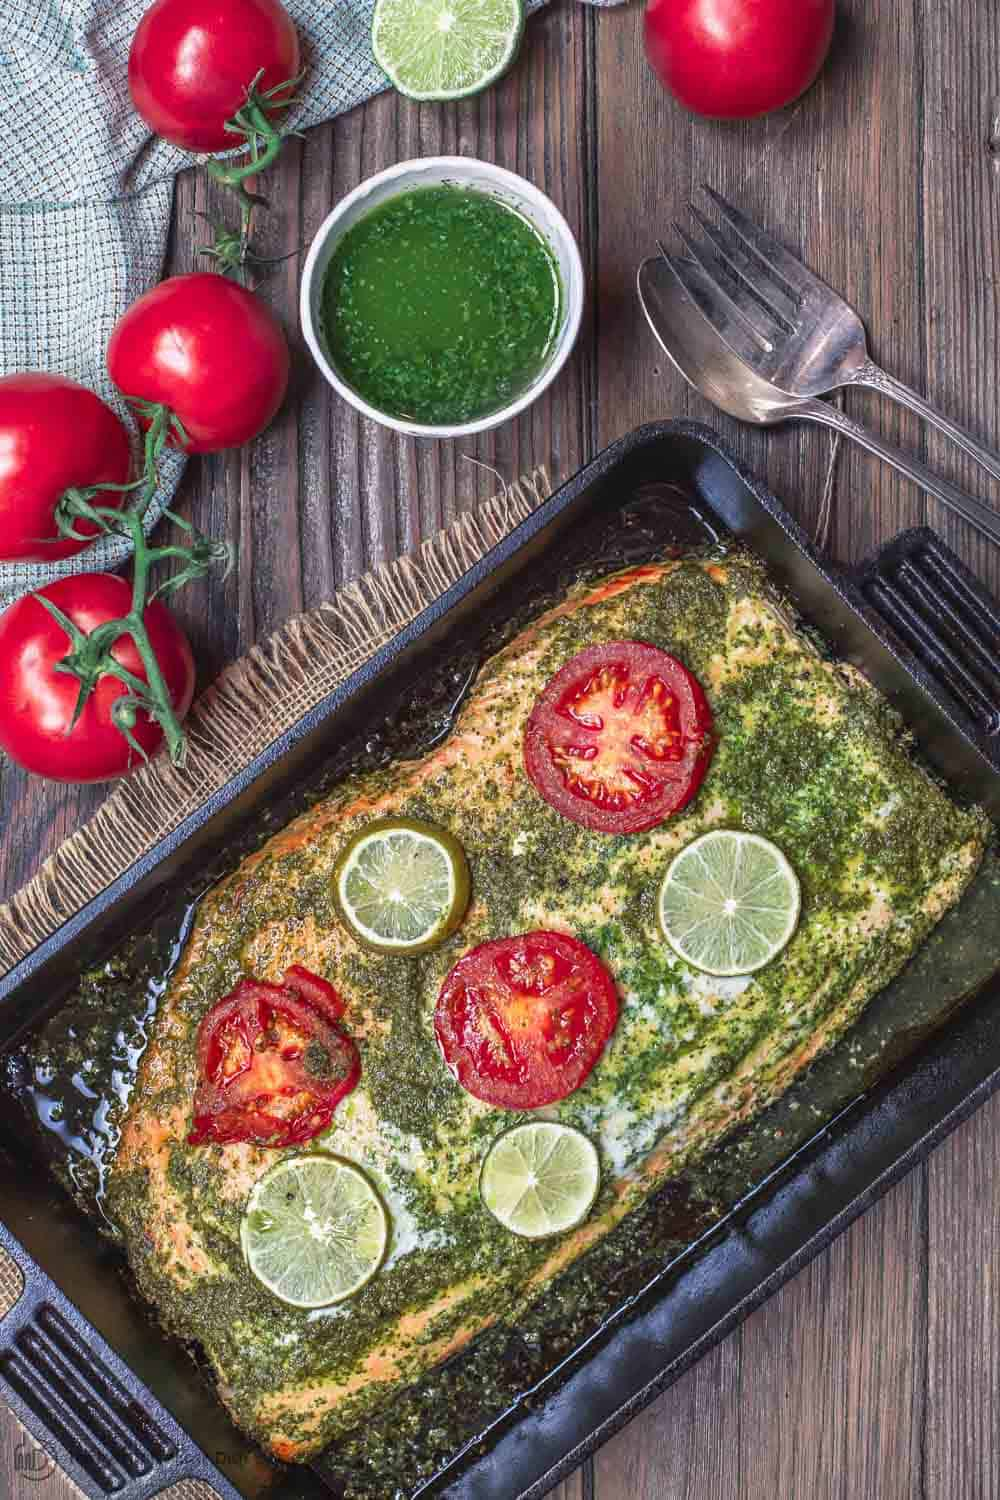 Baked Salmon served with extra garlic cilantro sauce and sliced limes